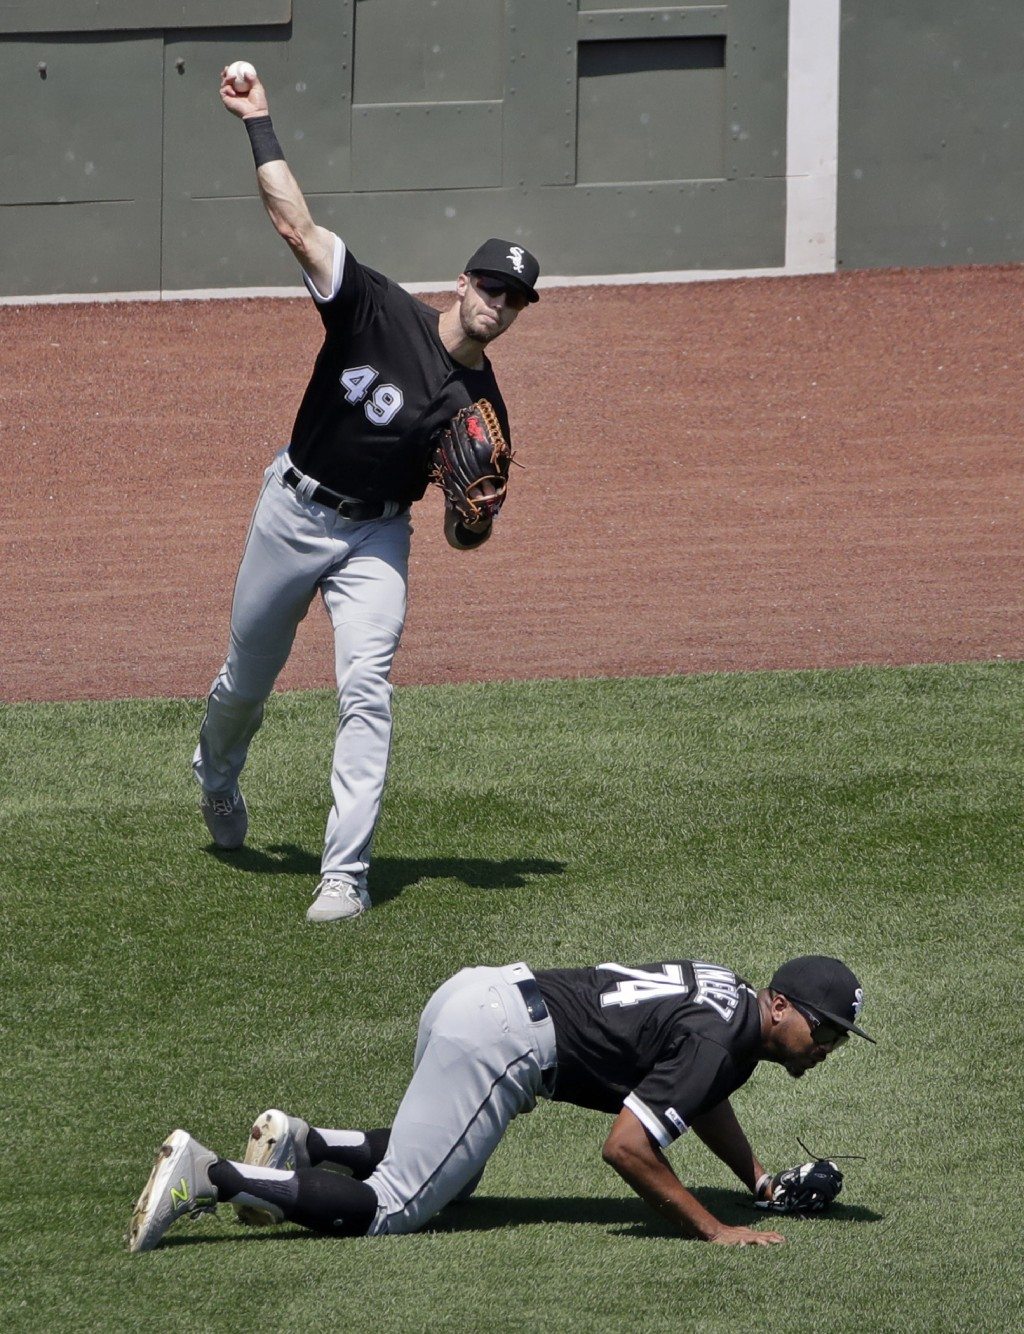 Chicago White Sox left fielder Eloy Jimenez (74) ducks down so center fielder Ryan Cordell (49) has a clear throw into the infield after a single by B...